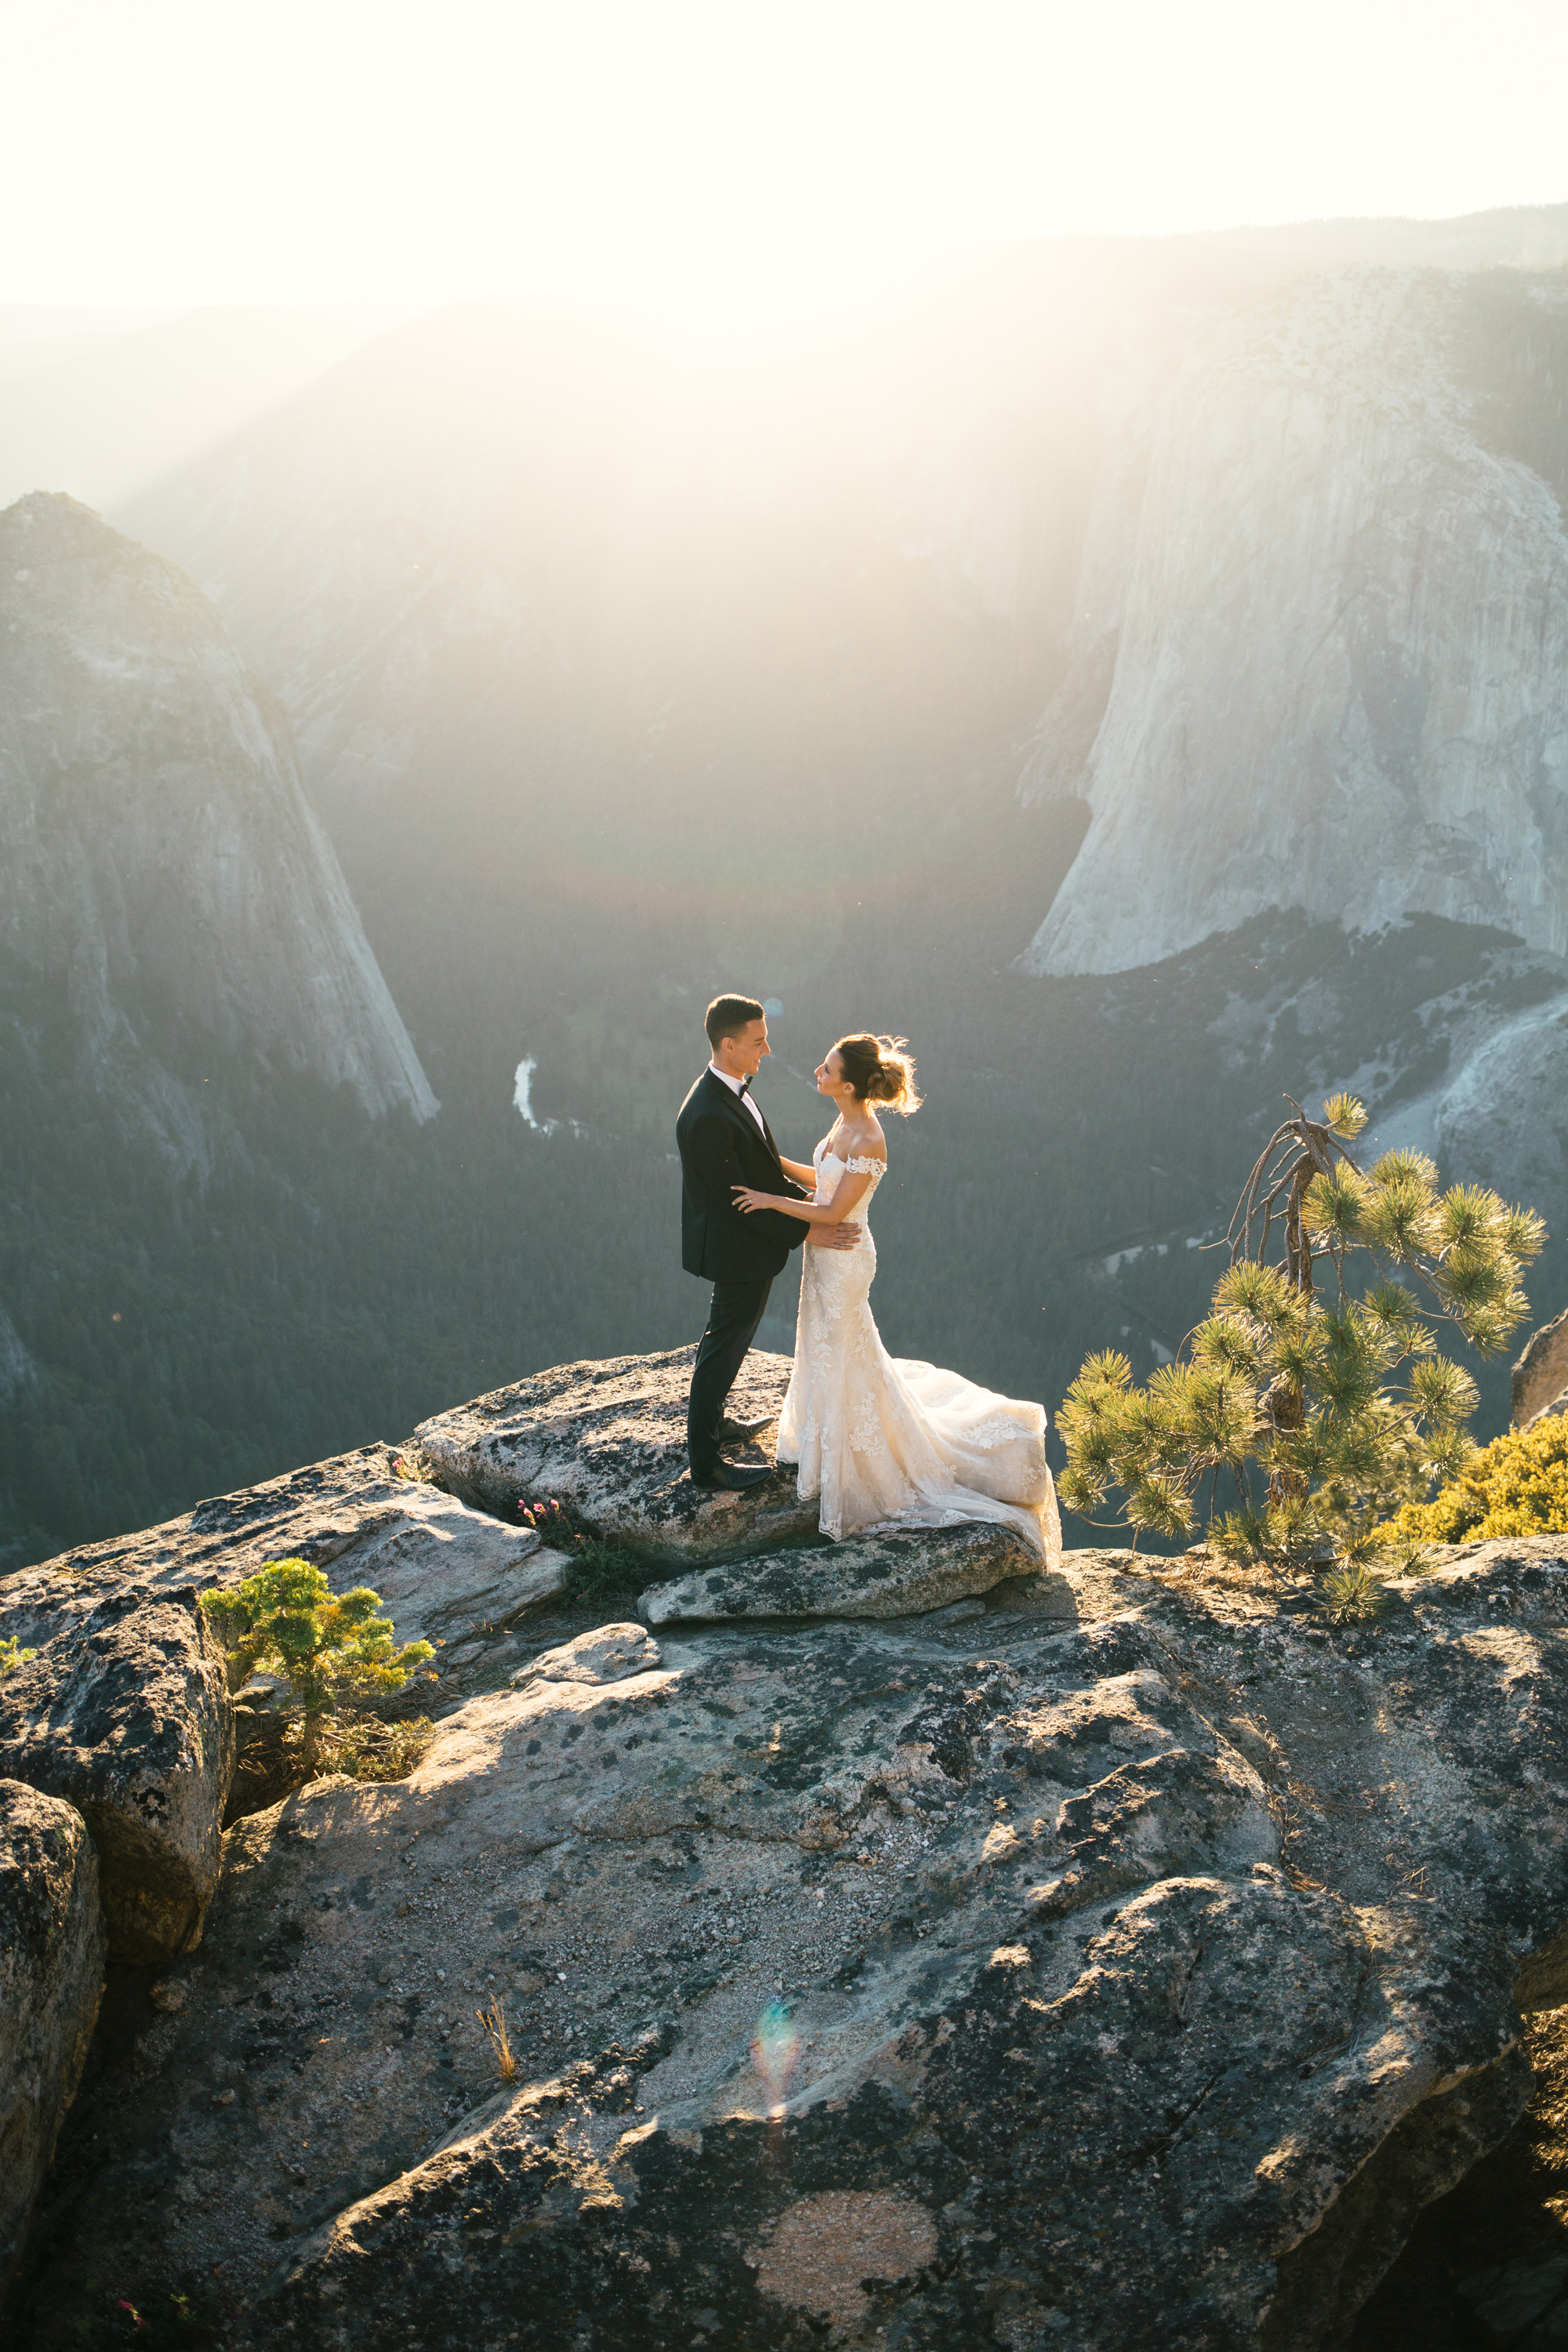 yosemite-adventure-wedding-amyjames (11).jpg